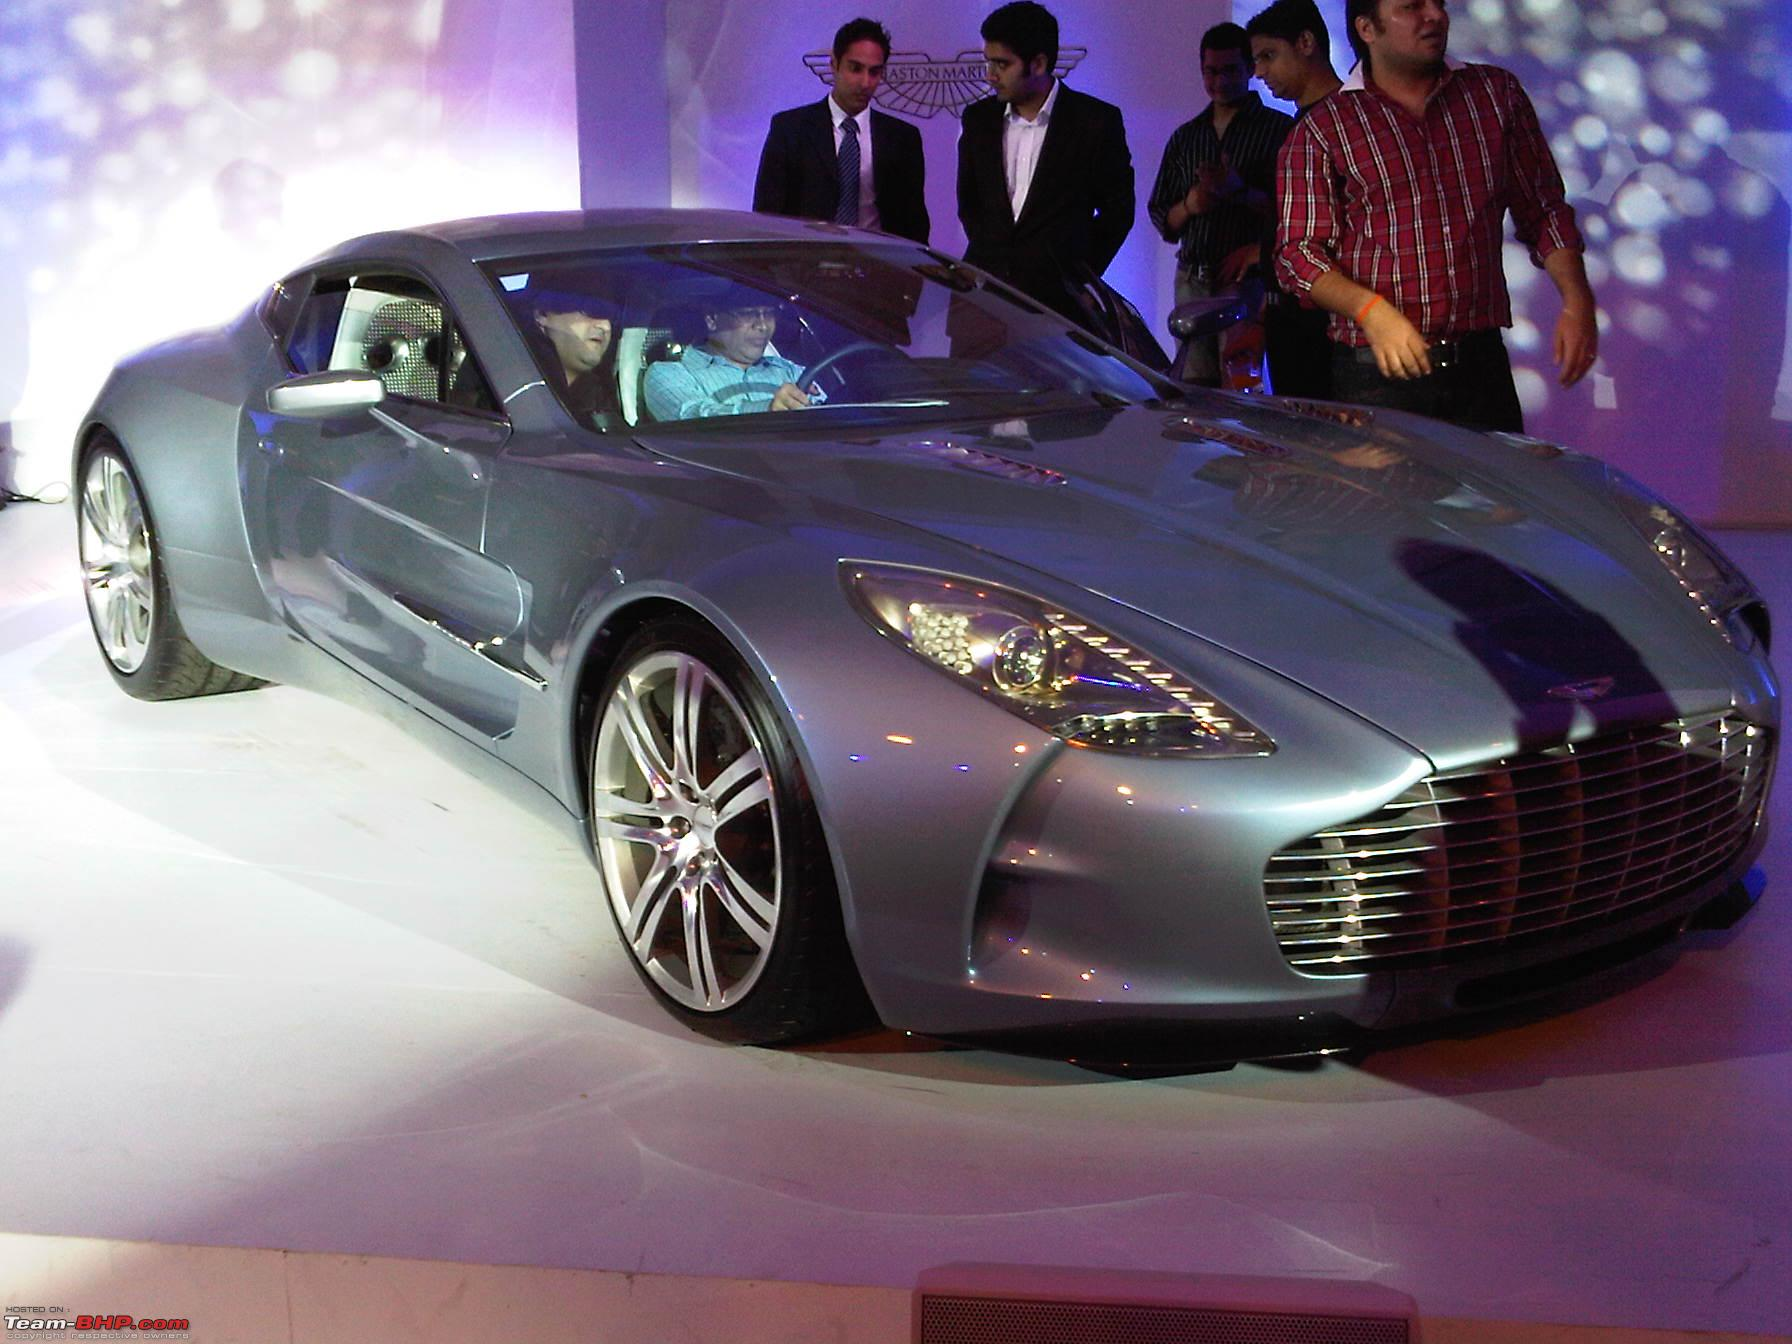 aston martin: officially launched in india on 15th april, 2011